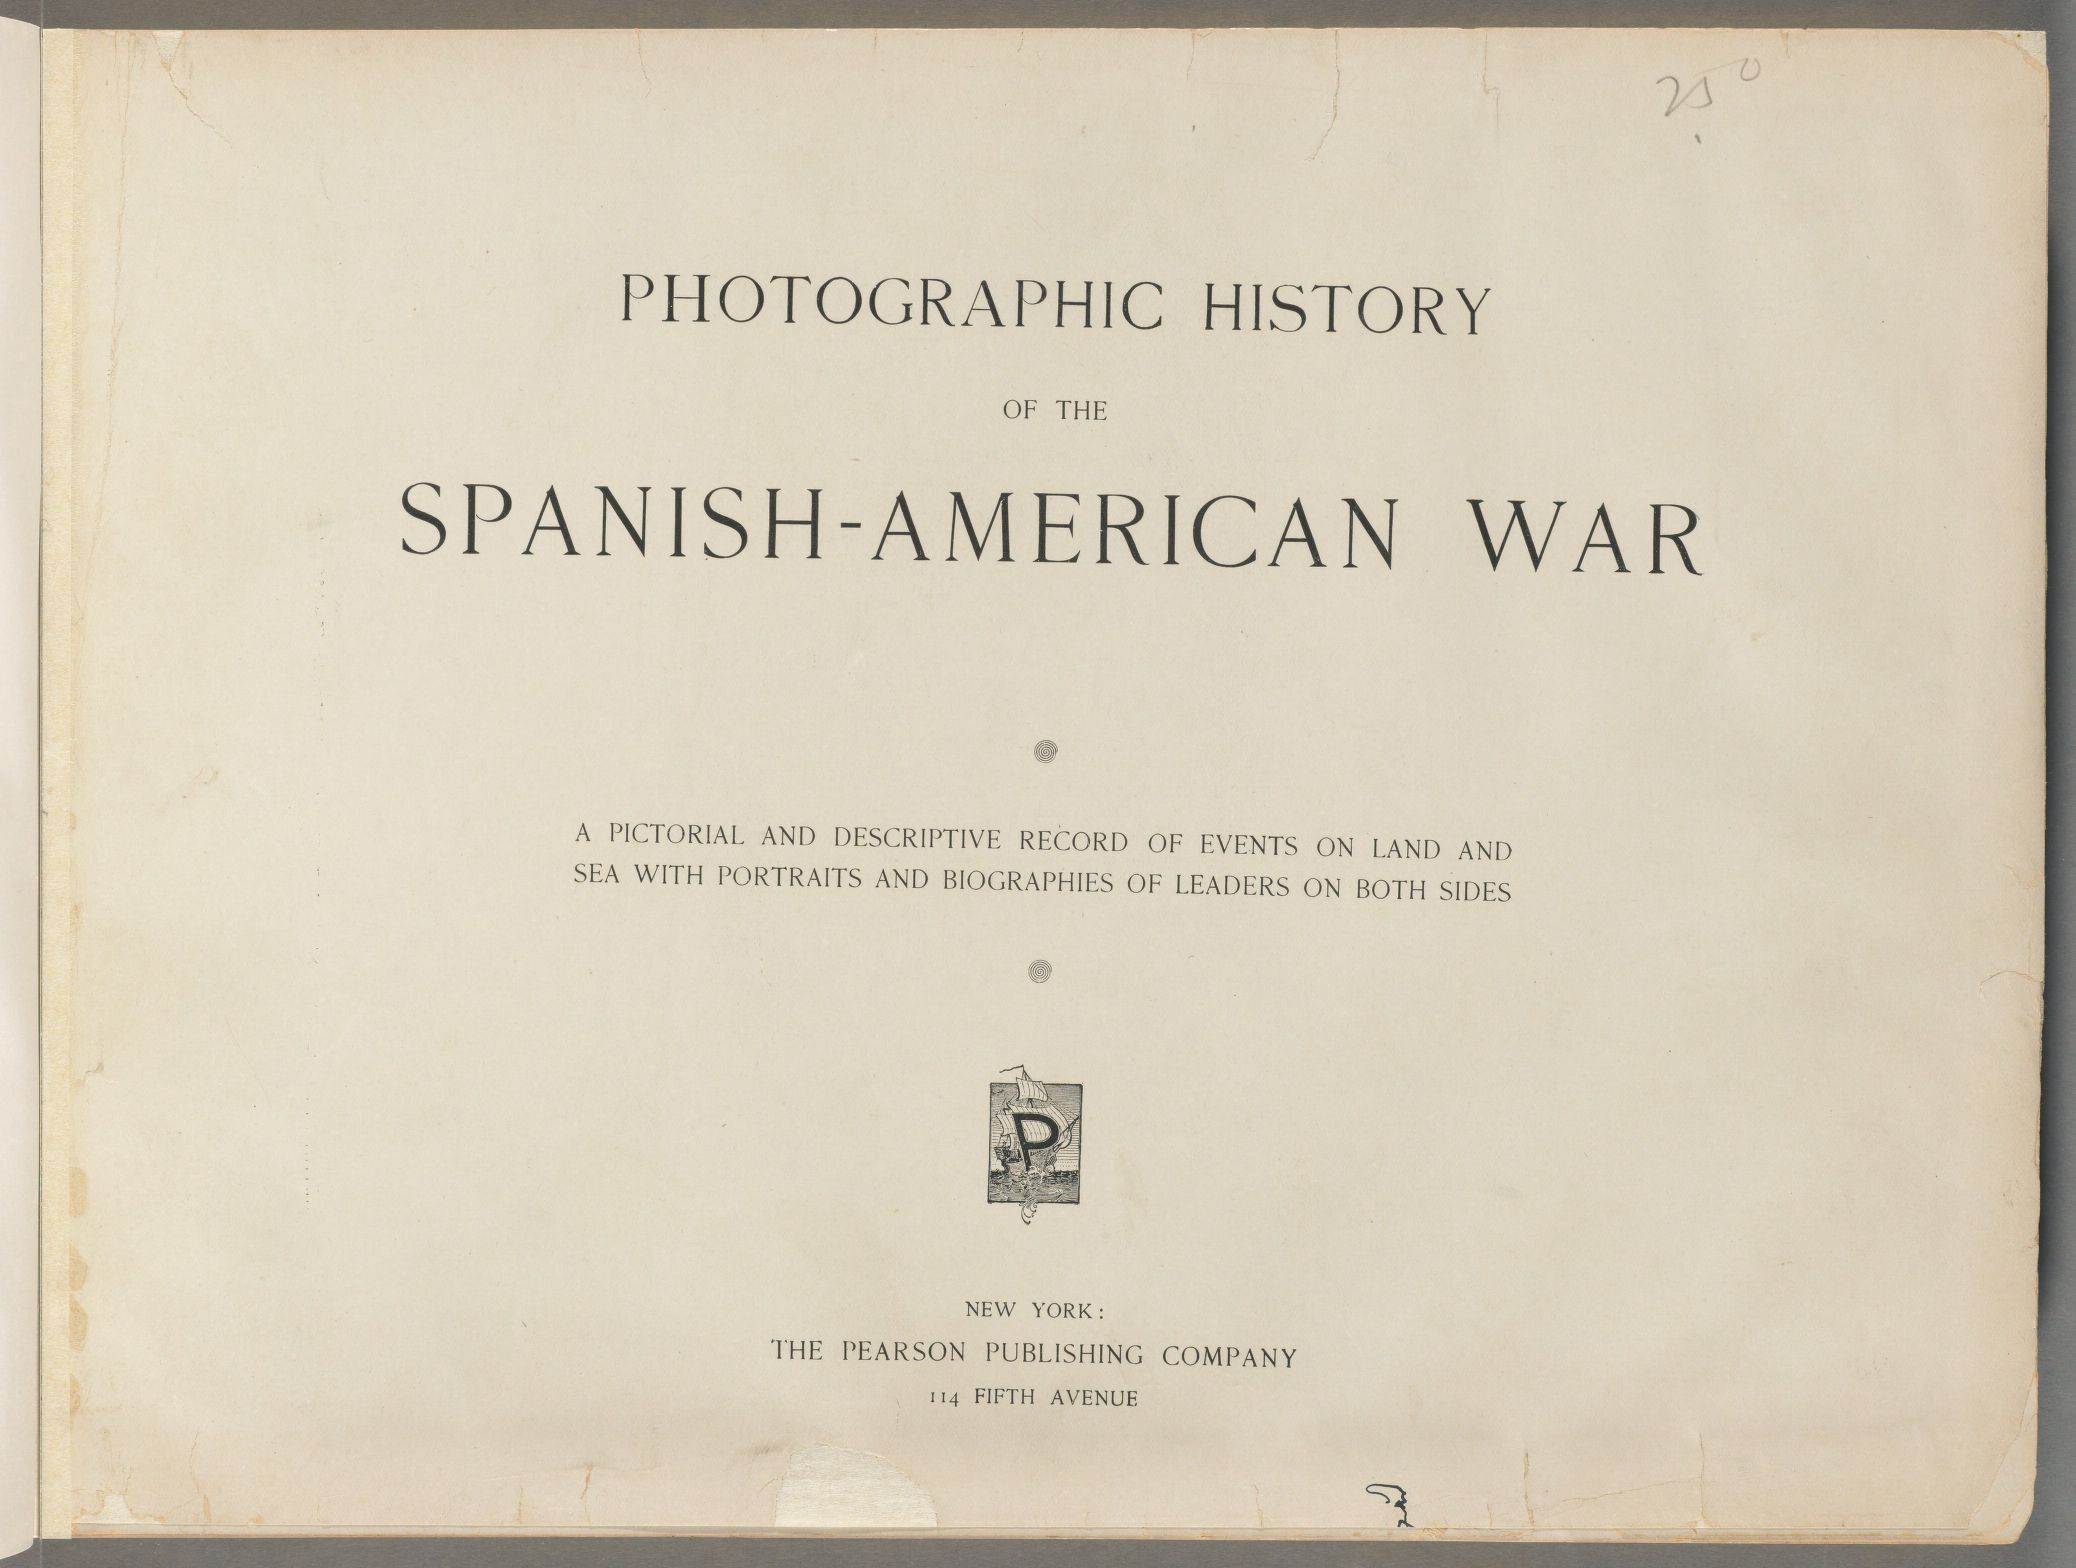 American Sniper Libro En Español Libro Quotphotographic History Of The Spanish American War